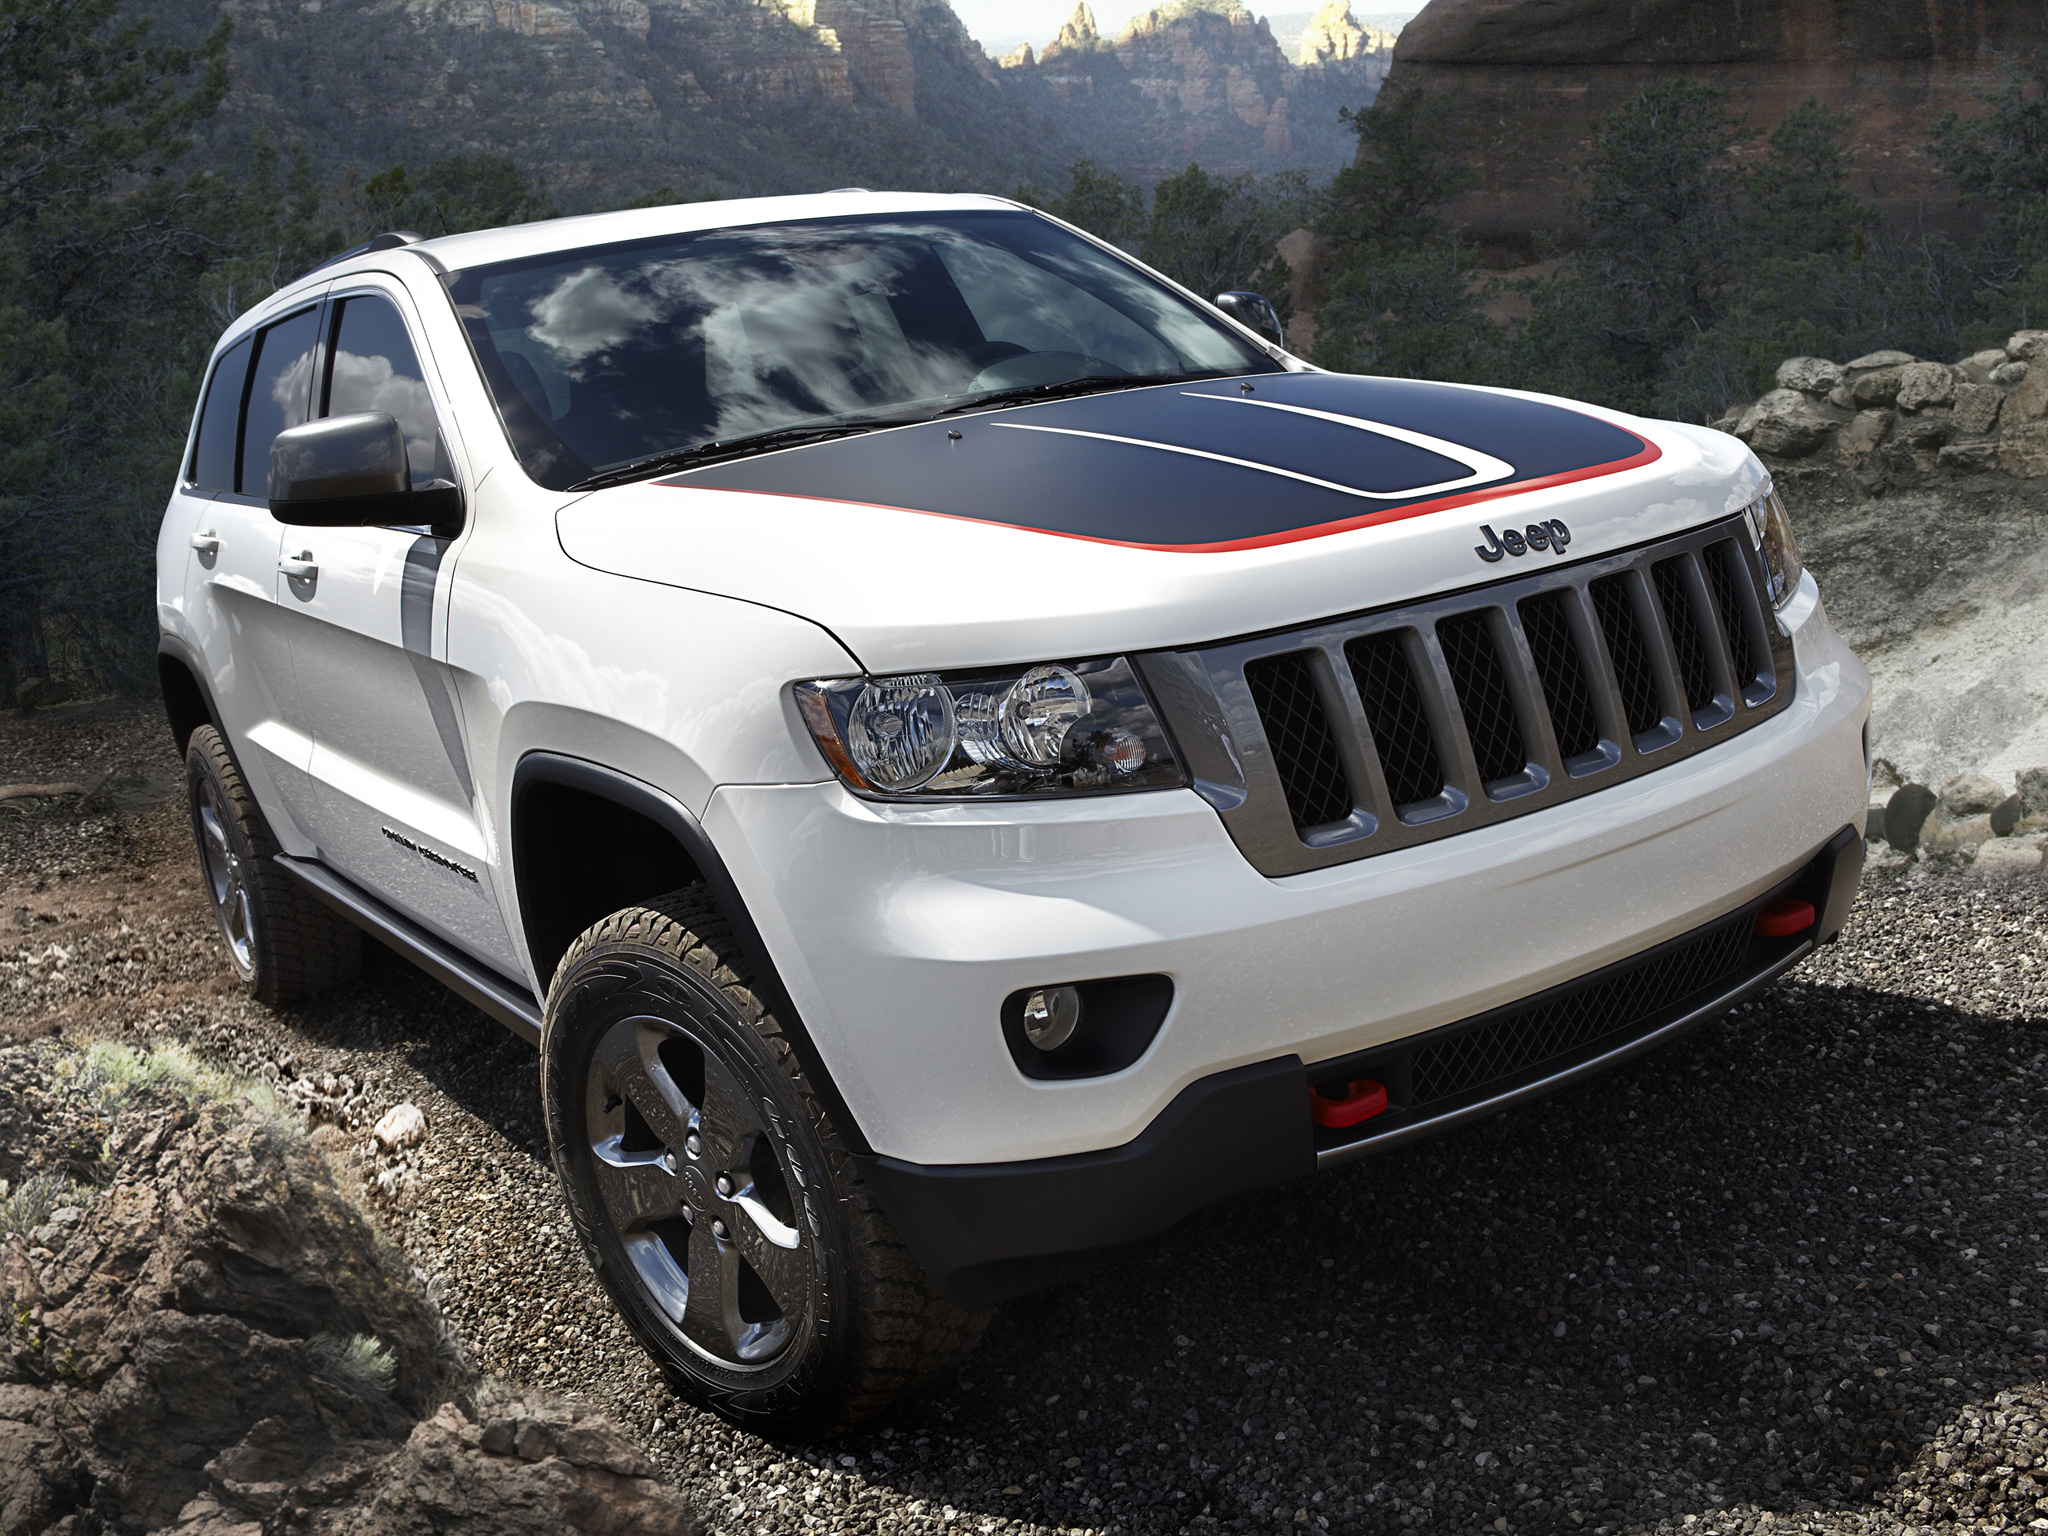 2019 jeep grand cherokee trailhawk car photos catalog 2018. Black Bedroom Furniture Sets. Home Design Ideas